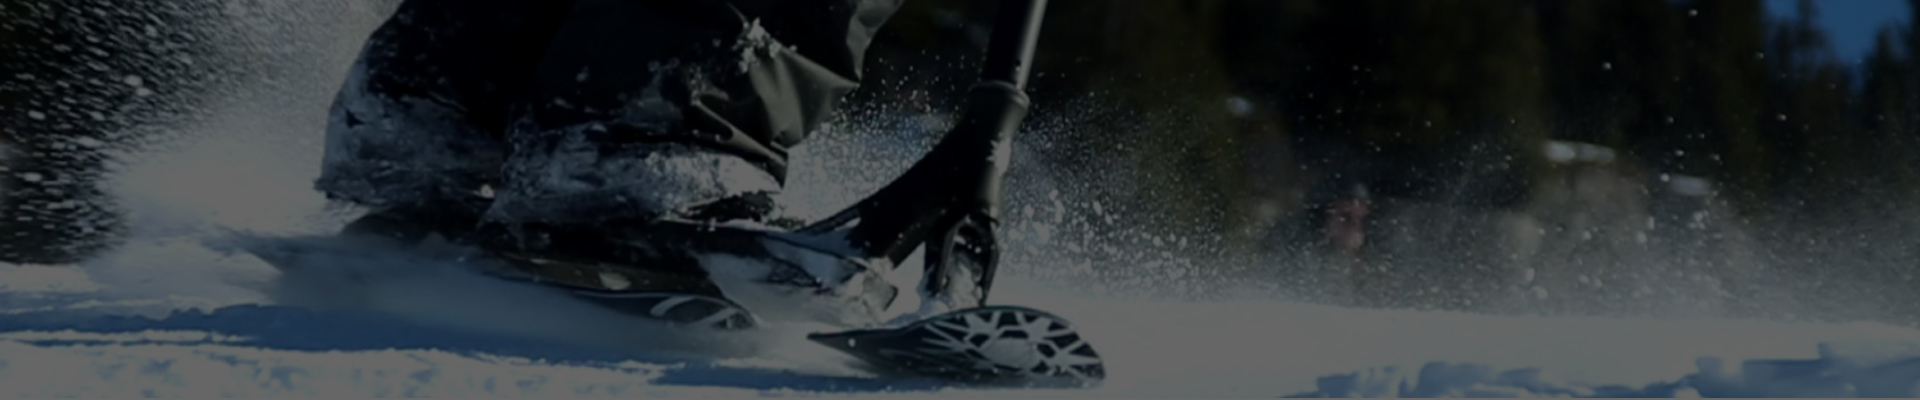 Snow Scooters - Buy a Snow Scooter for fun and stunts | Xtreme-Skate.com